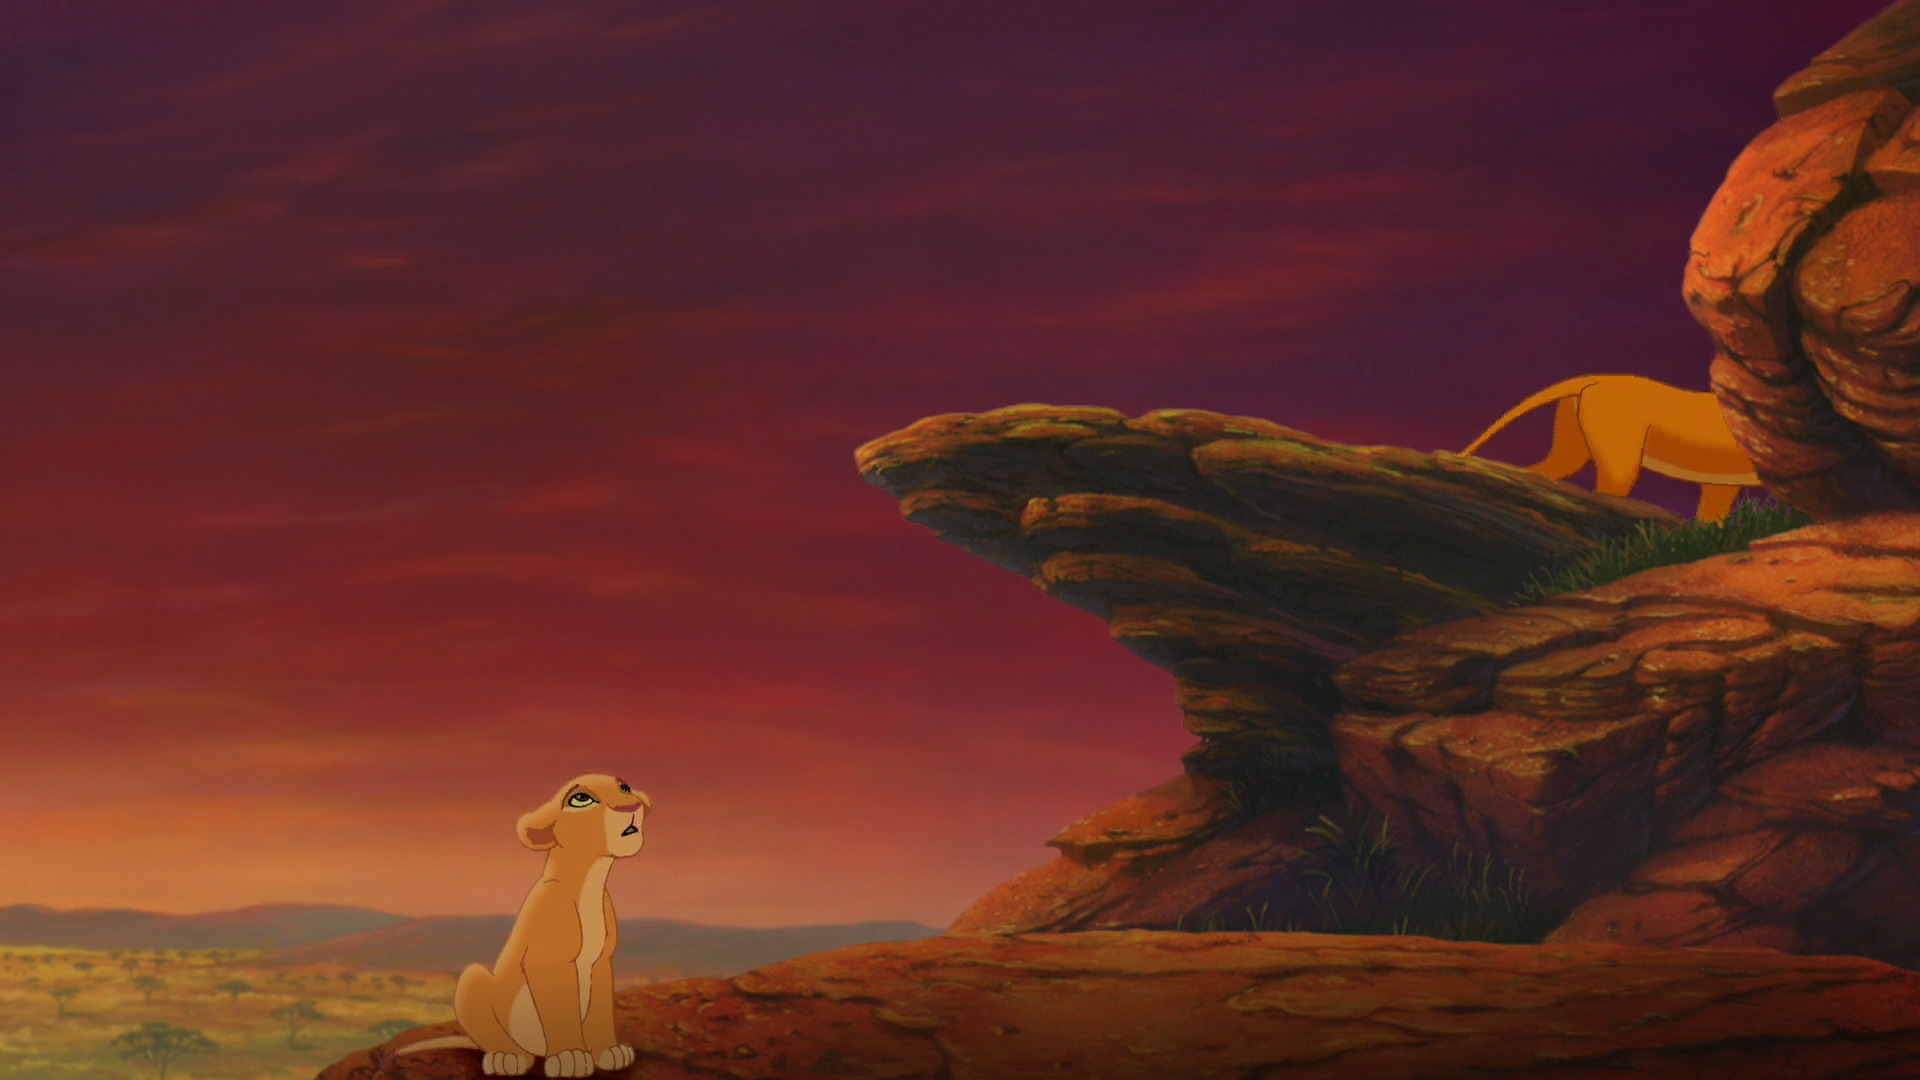 The lion king free movie download